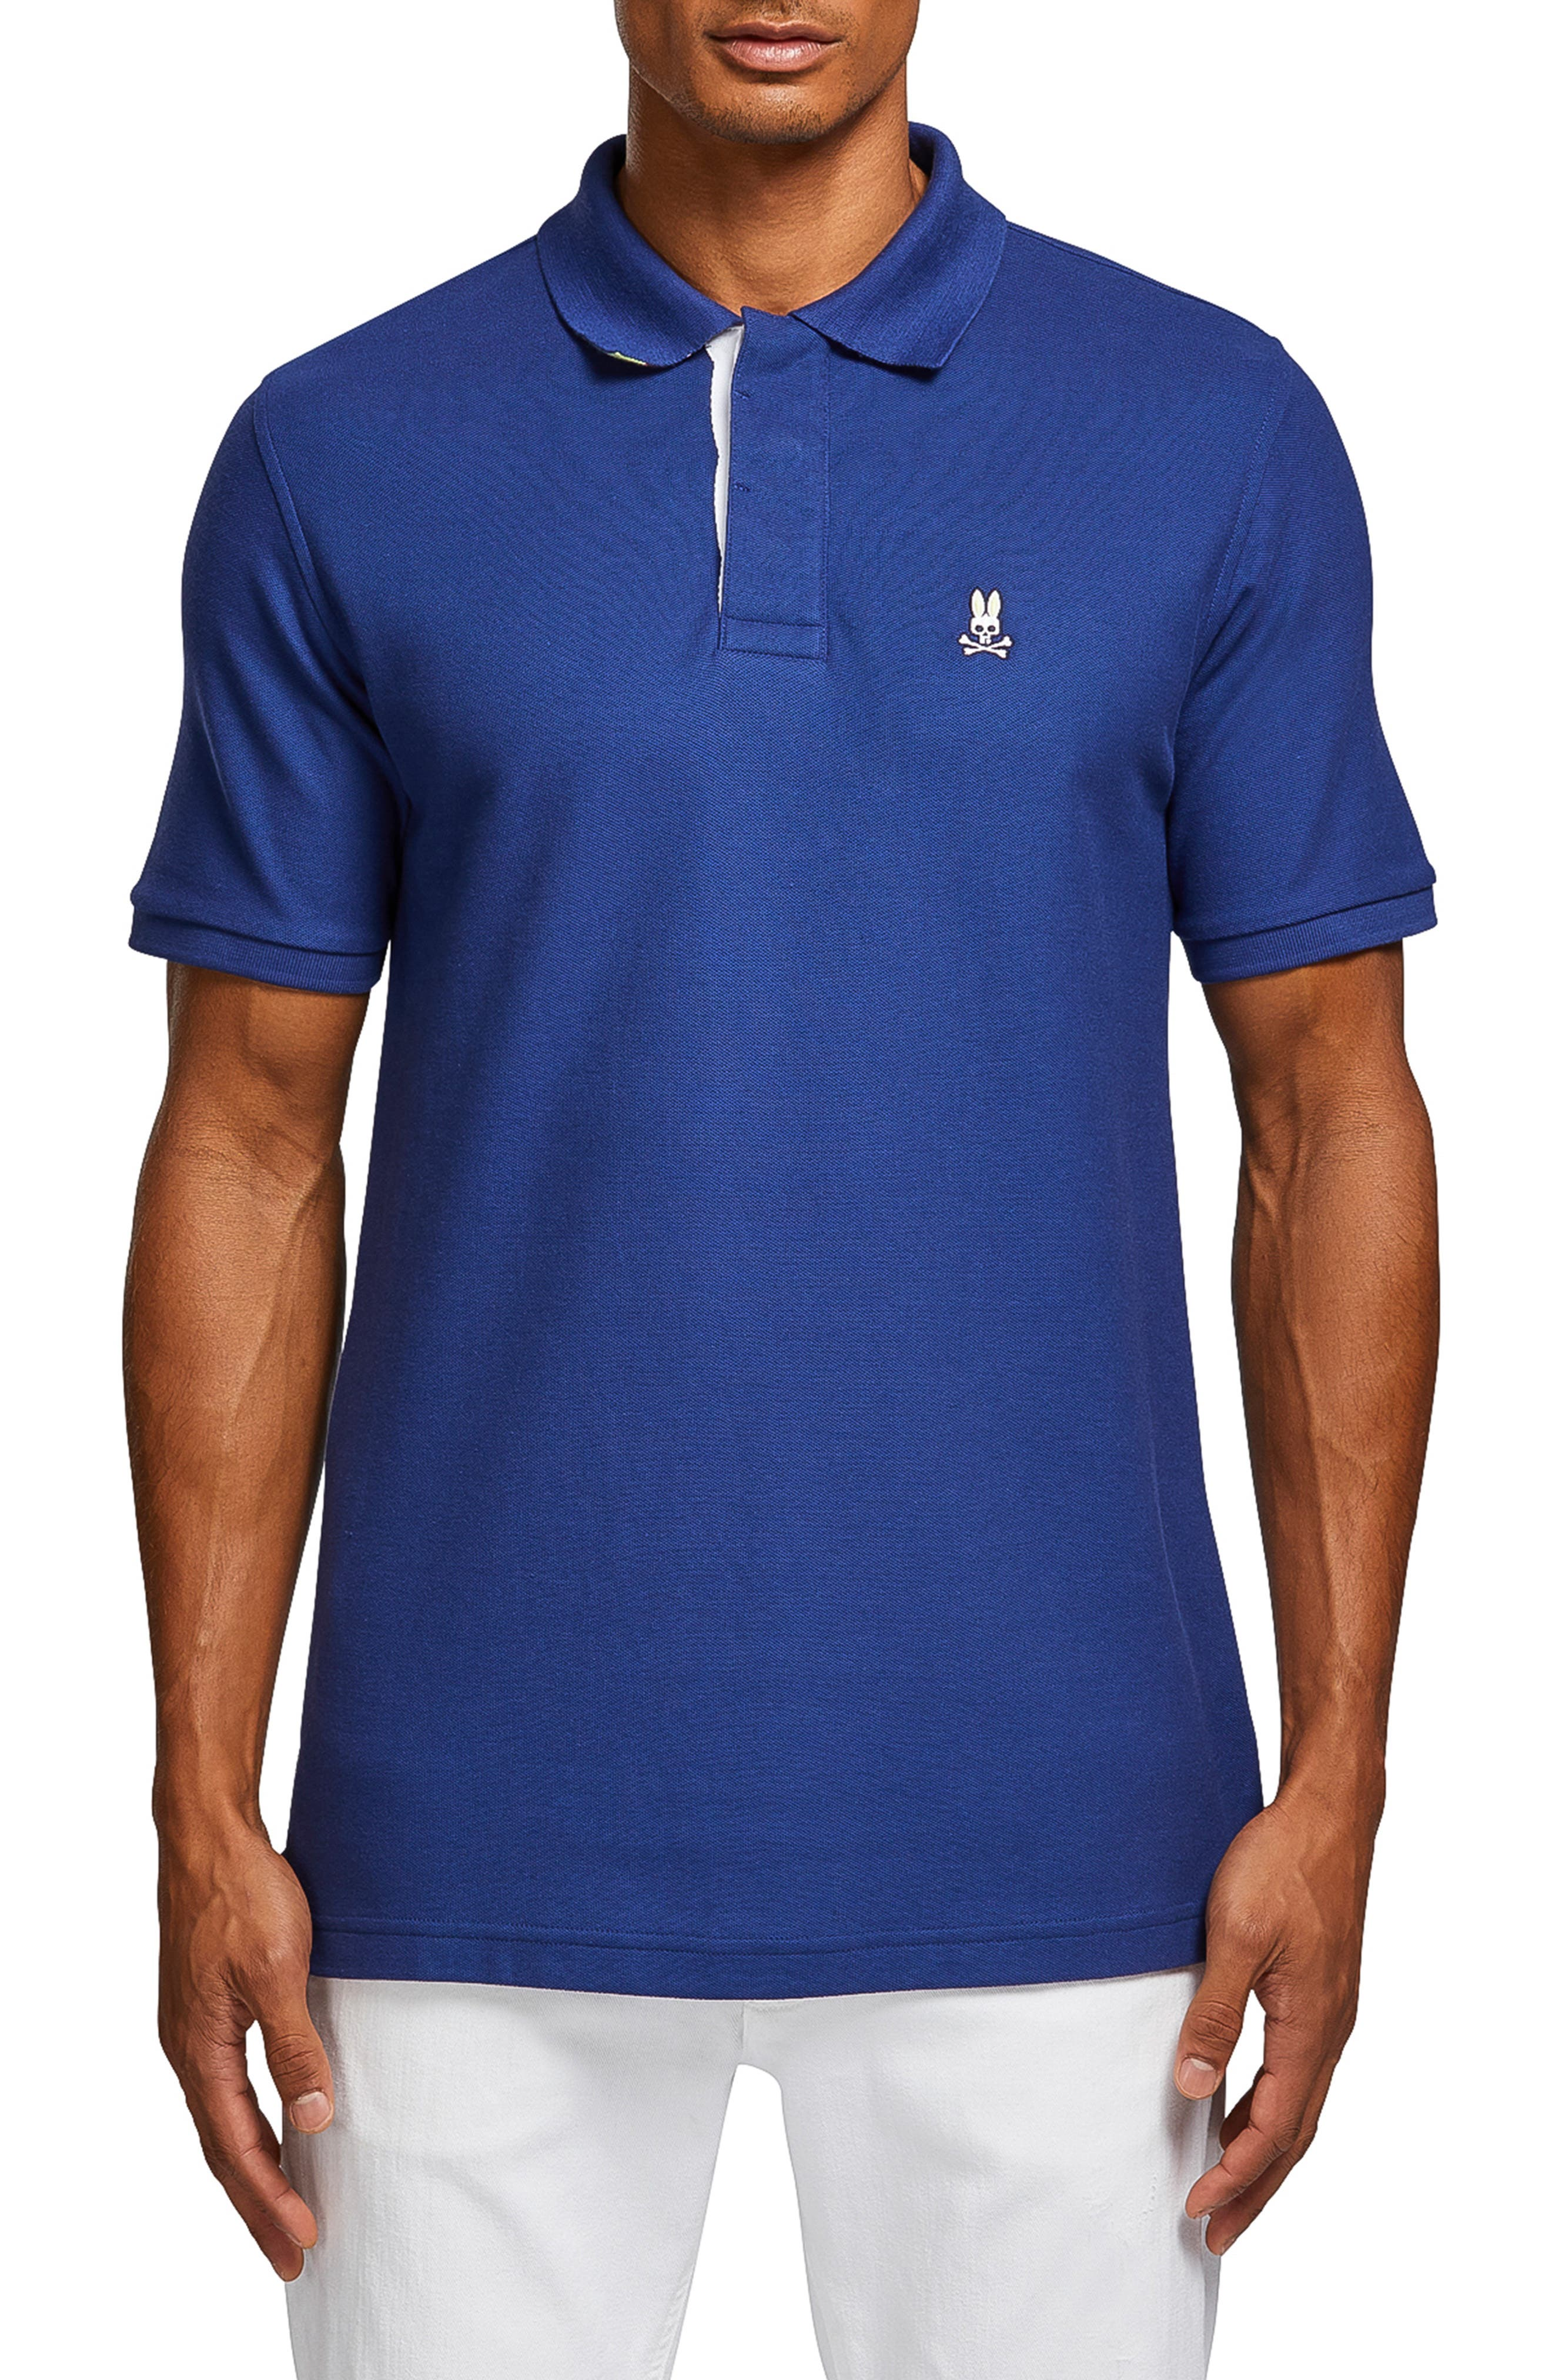 PSYCHO BUNNY Porthill Polo Shirt in Blue Print